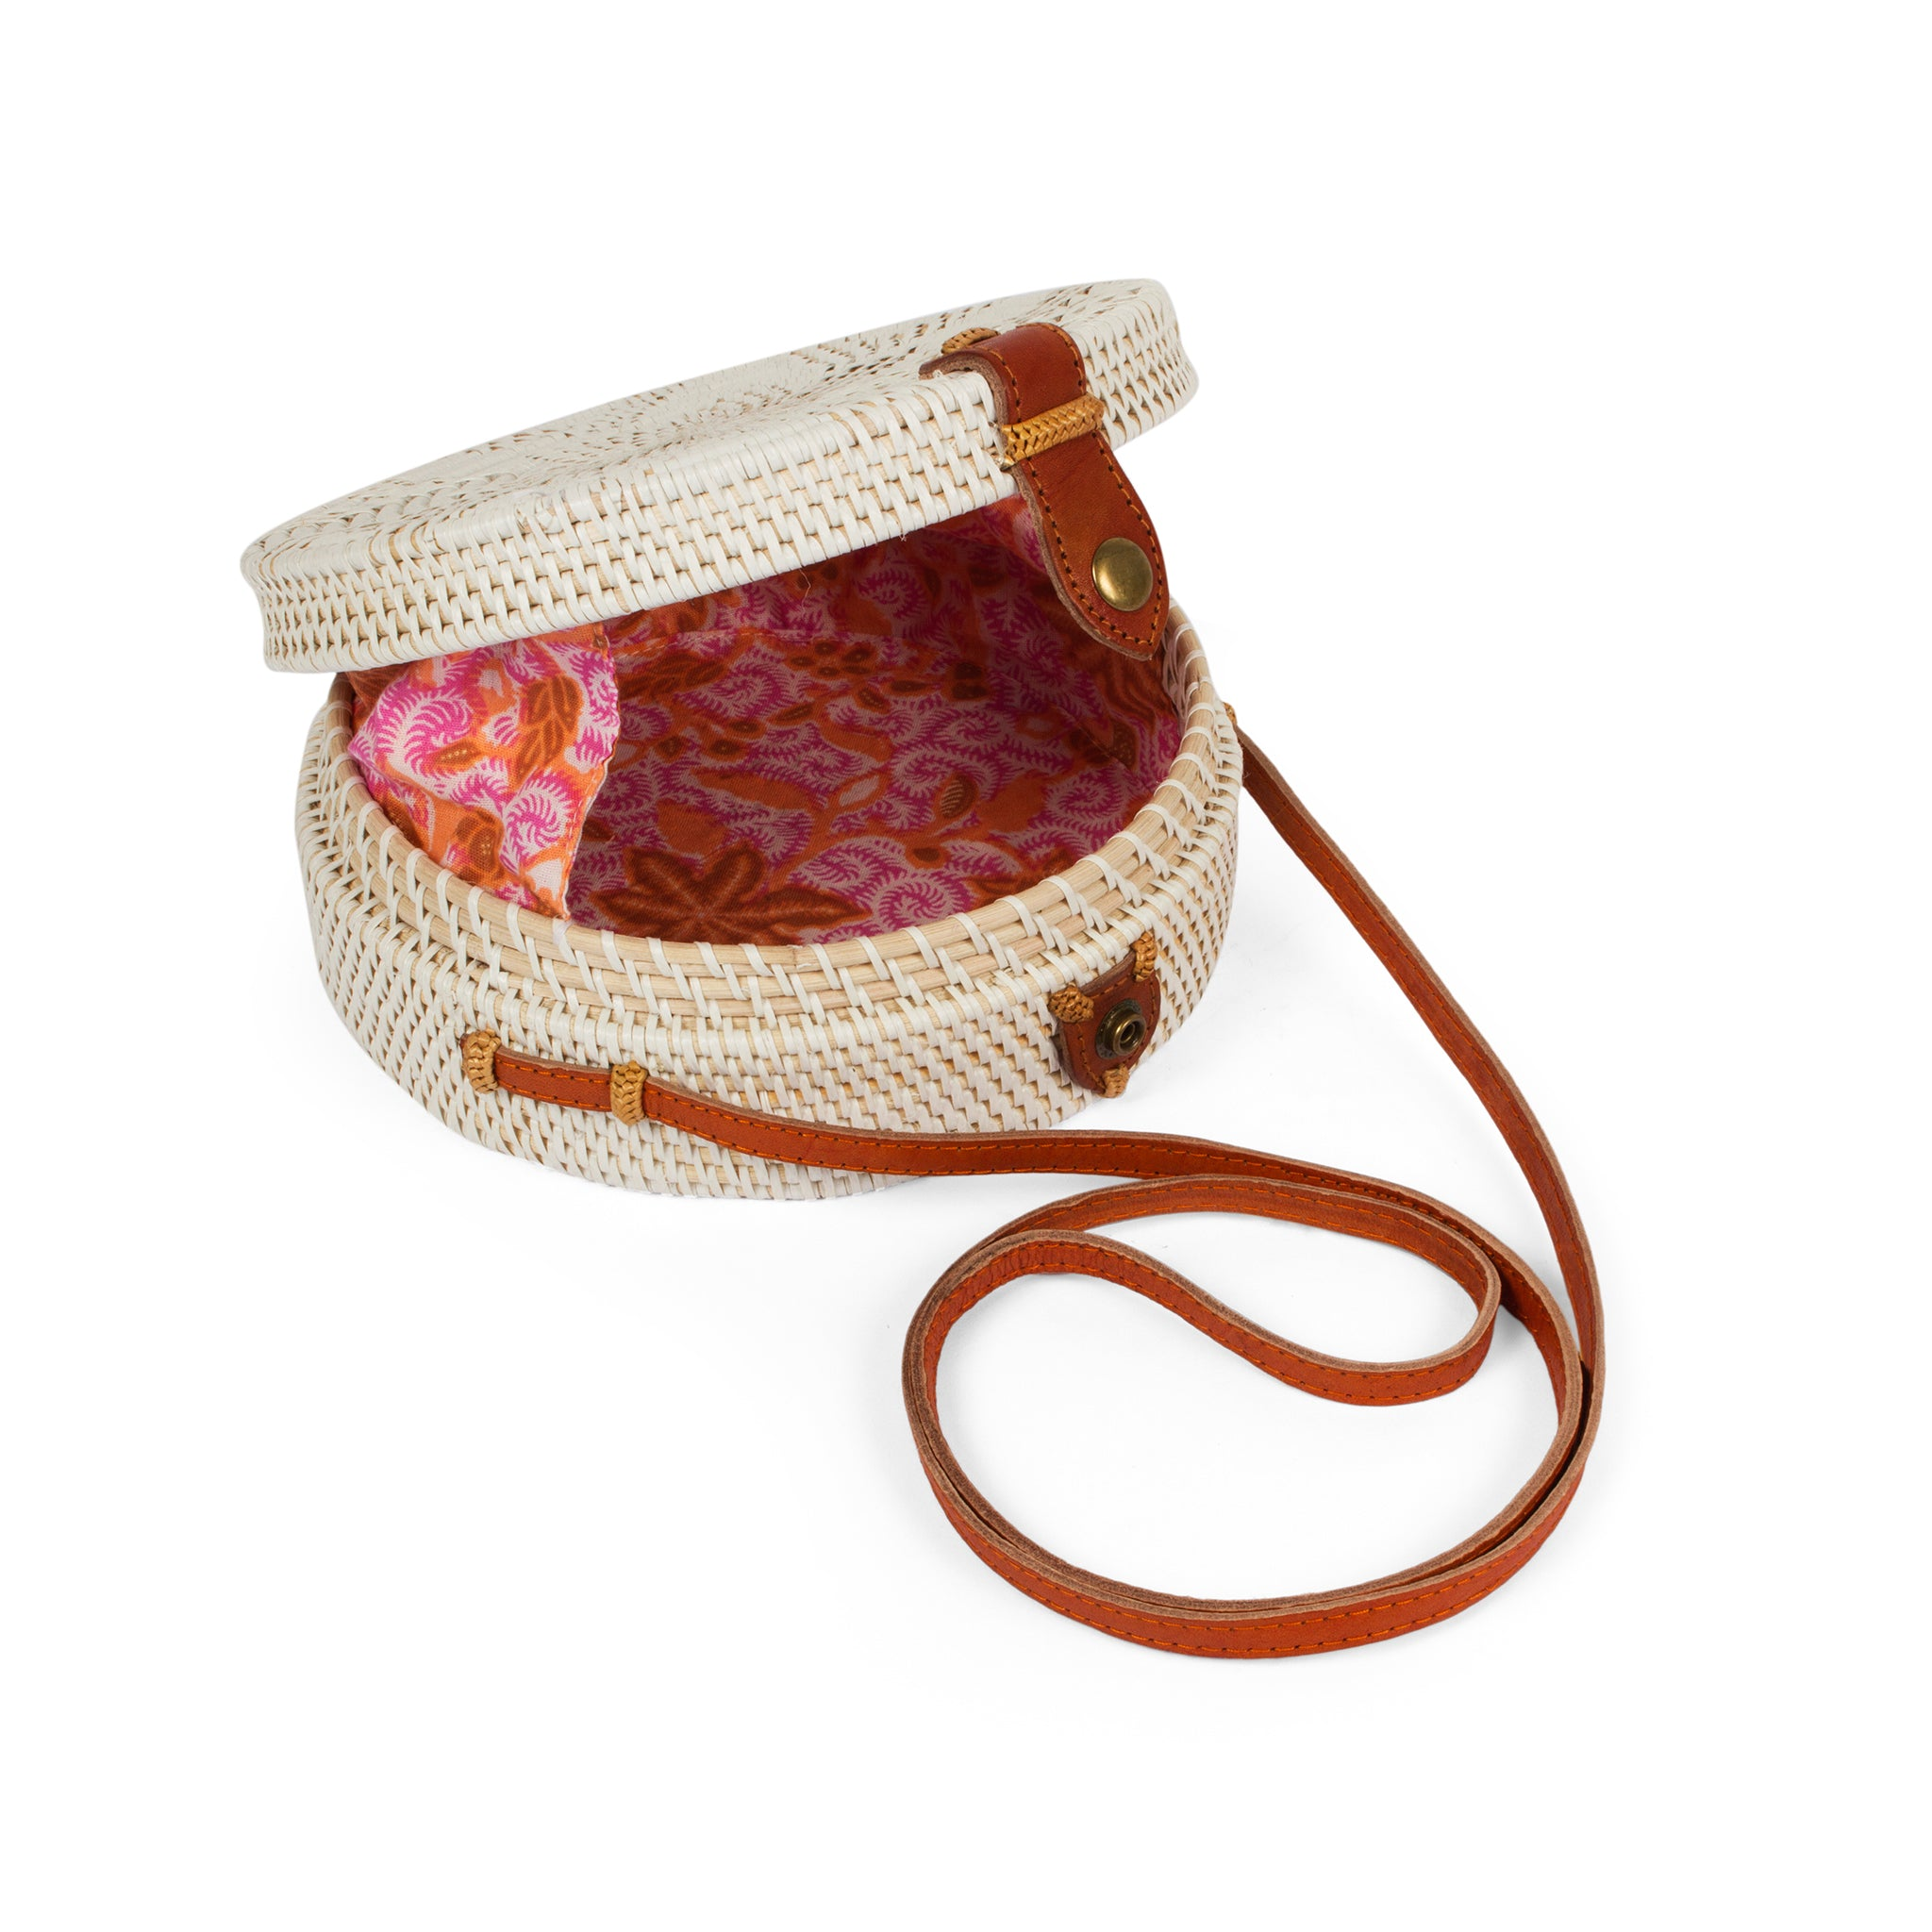 Circular Rattan Bag- Crossbody Round Shoulder Bag-White